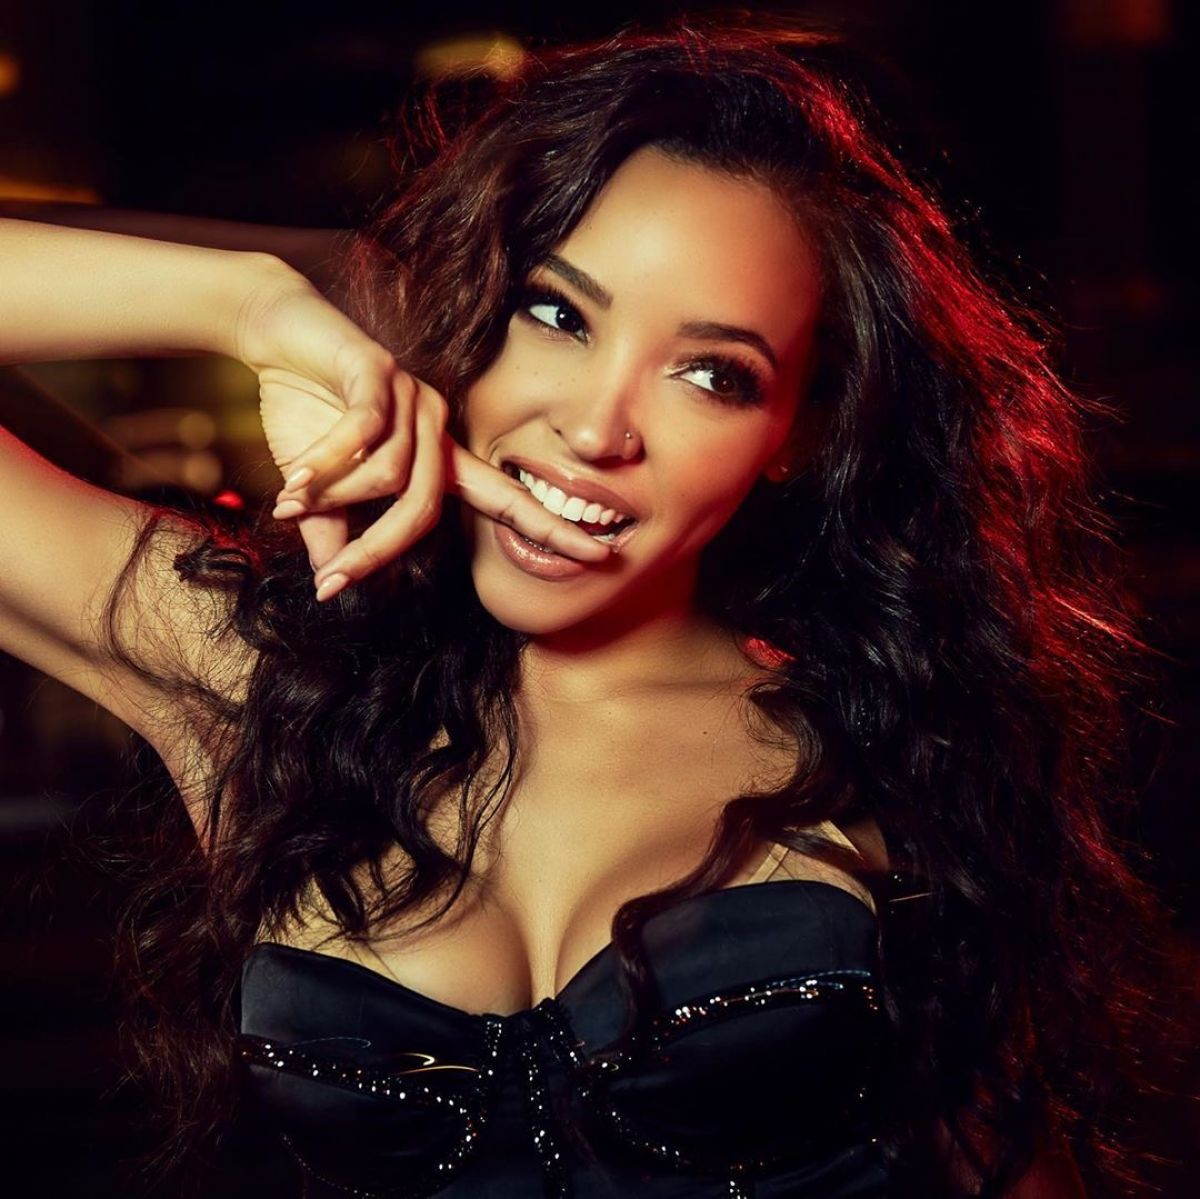 """A @Tinashe live stream for you  We can't wait to watch her perform songs from """"Songs For You"""" live from her home studio Tomorrow, March 27 at 2pm on her YouTube, Instagram, and LiveXLive: https://bit.ly/StreamTinashe. Tune in and check it out!pic.twitter.com/jQLnfkW3YC"""